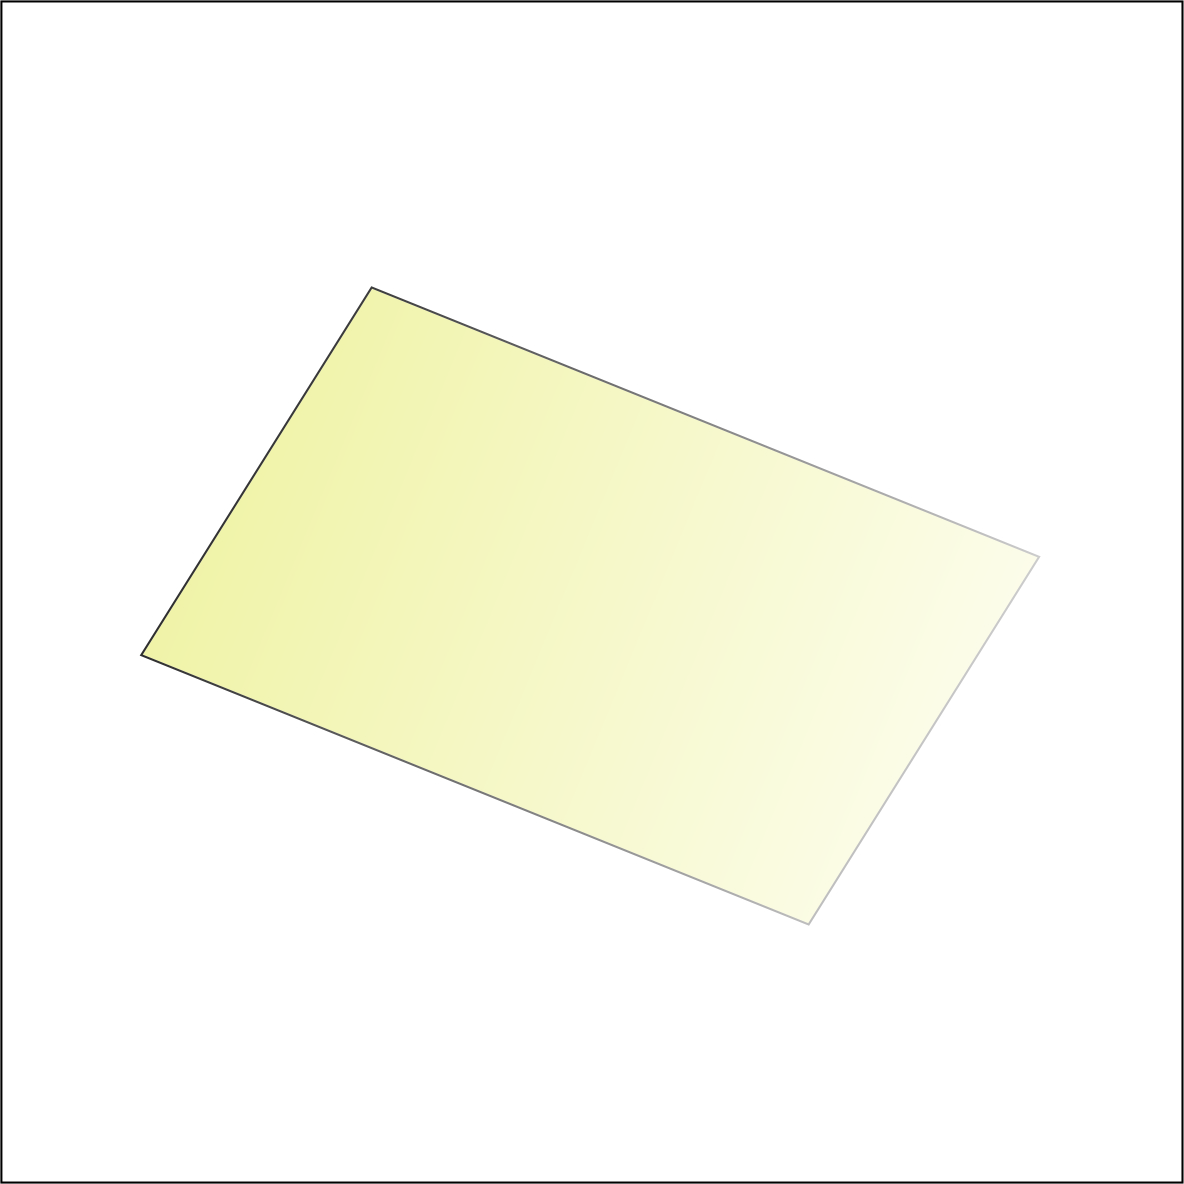 Tiffen Gold Diffussion FX1 Filter by Accord Equips